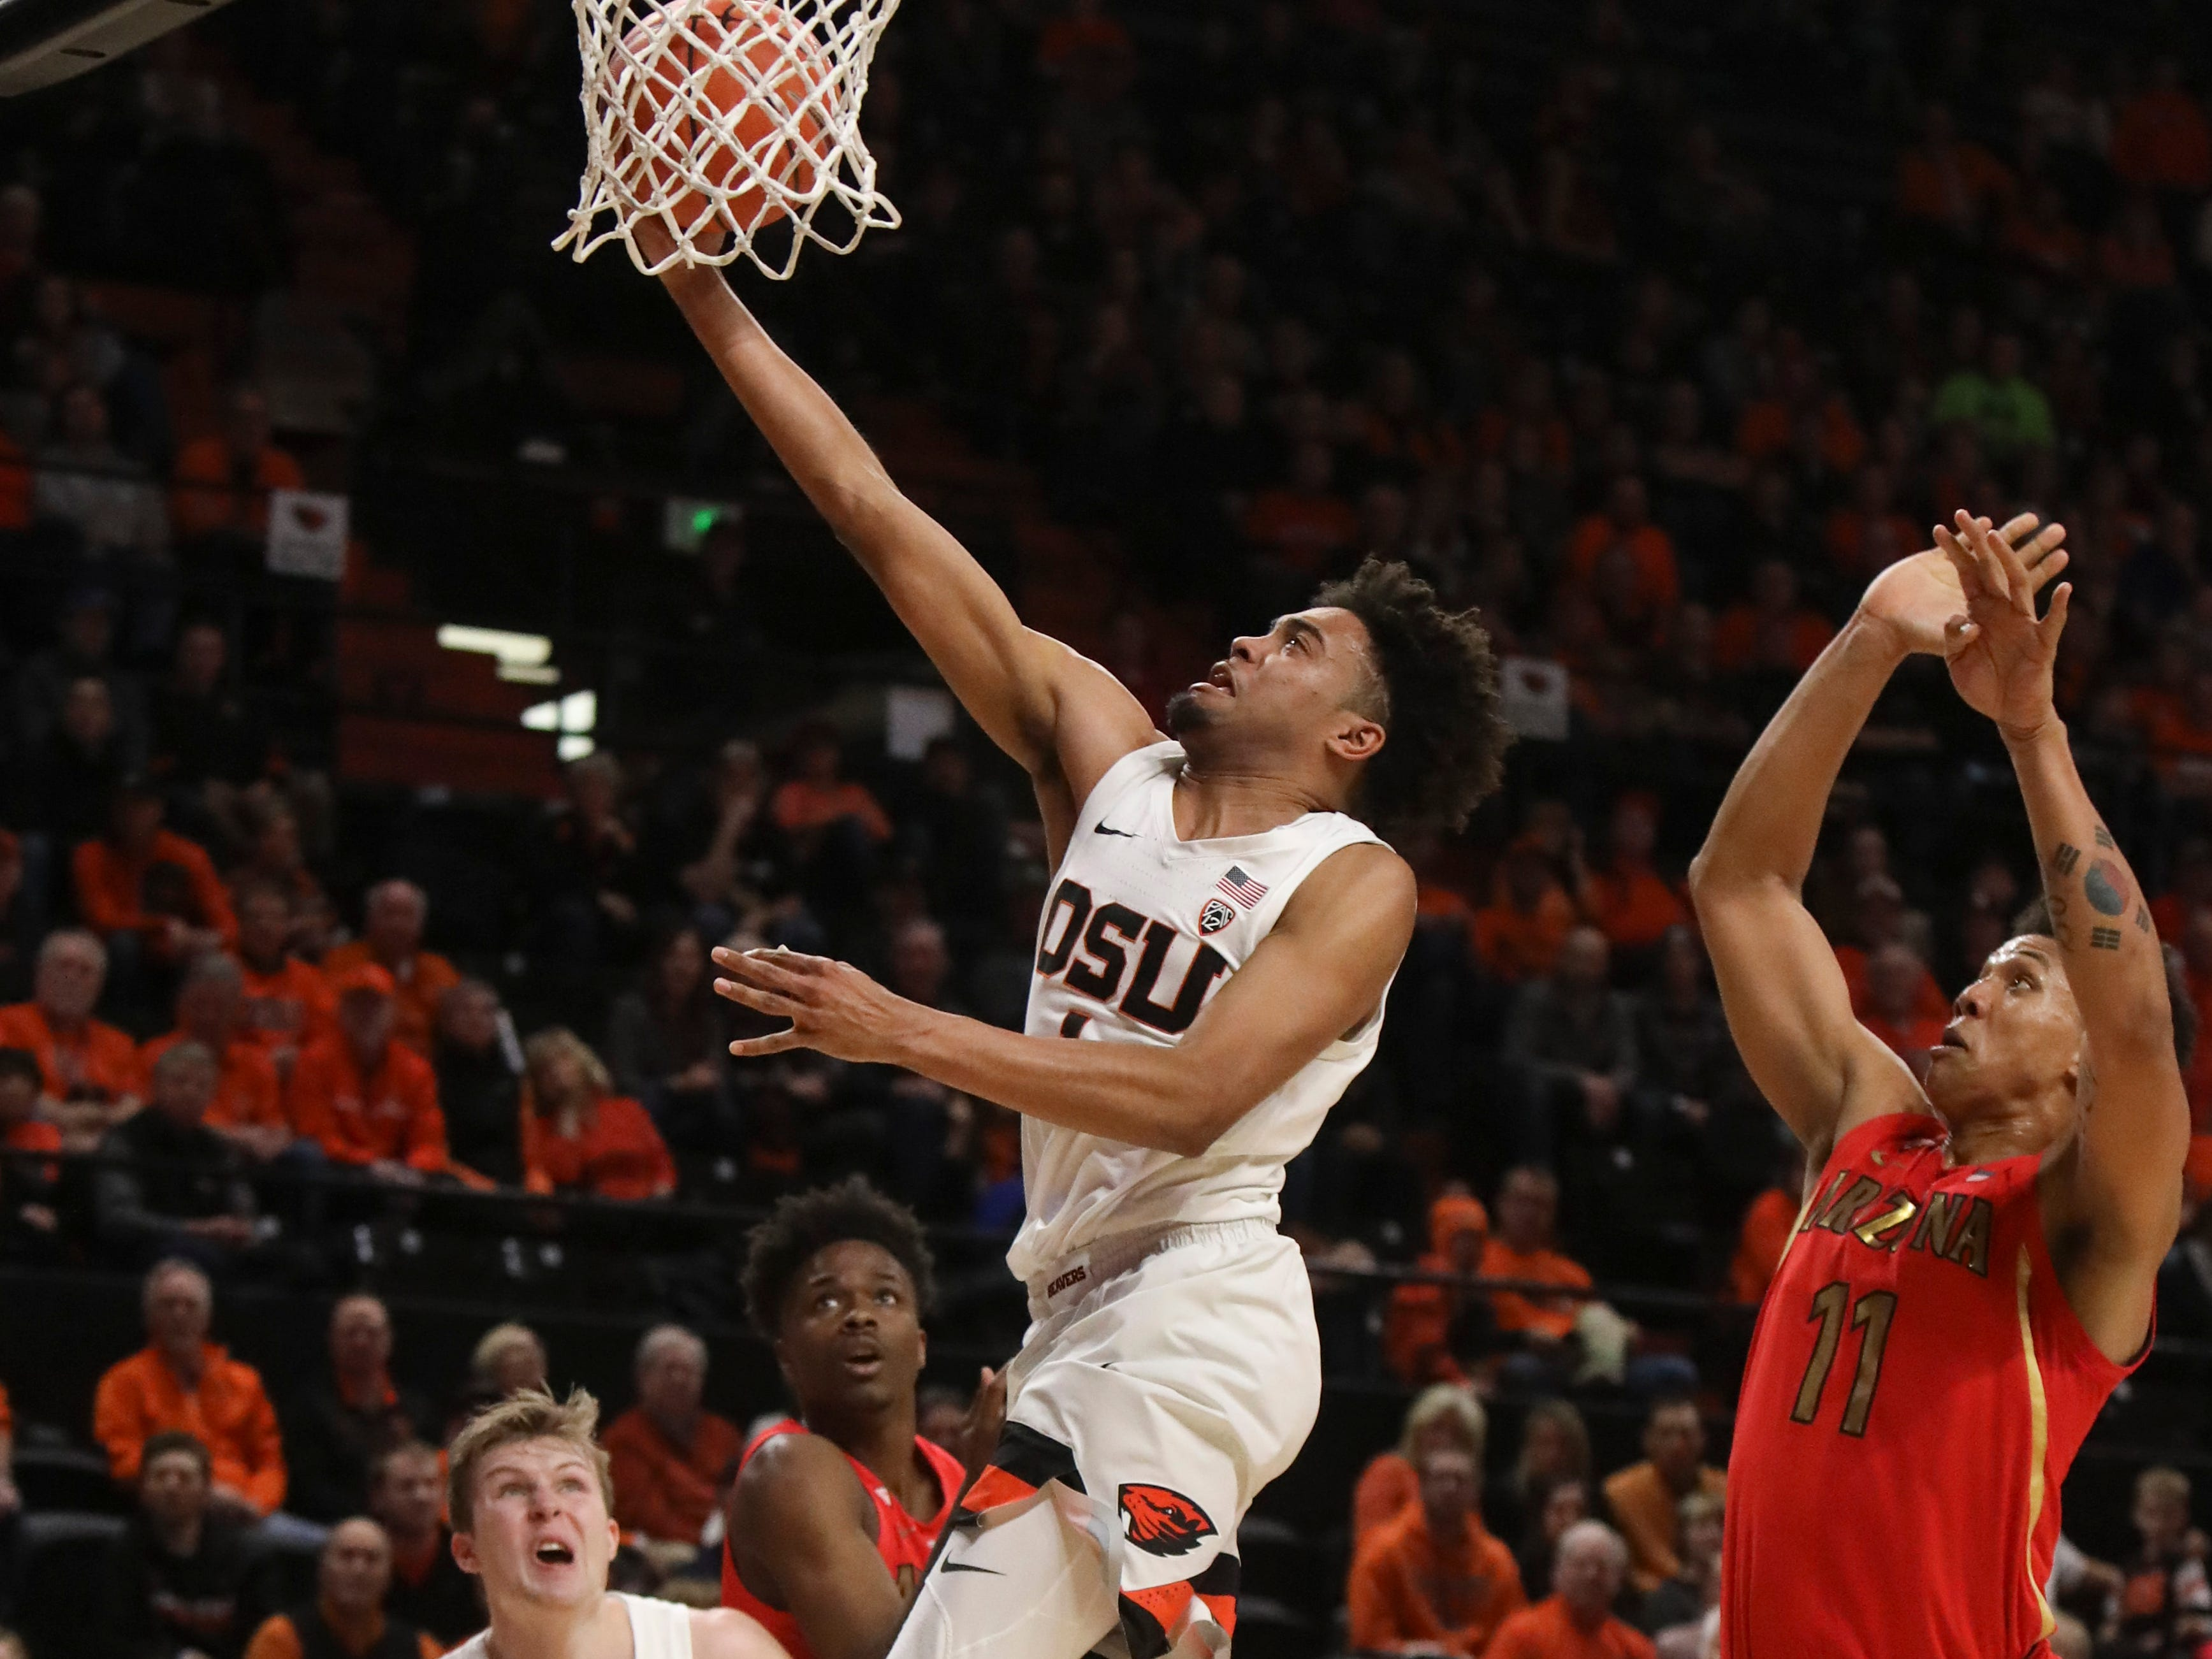 Oregon State's Stephen Thompson Jr. (1) drives to the basket past Arizona's Ira Lee, right, as Oregon State's Zach Reichle, left, and Arizona's Devonaire Doutrive (1) watch during the second half of an NCAA college basketball game in Corvallis, Ore., Thursday, Feb. 28, 2019. Arizona won 74-72.